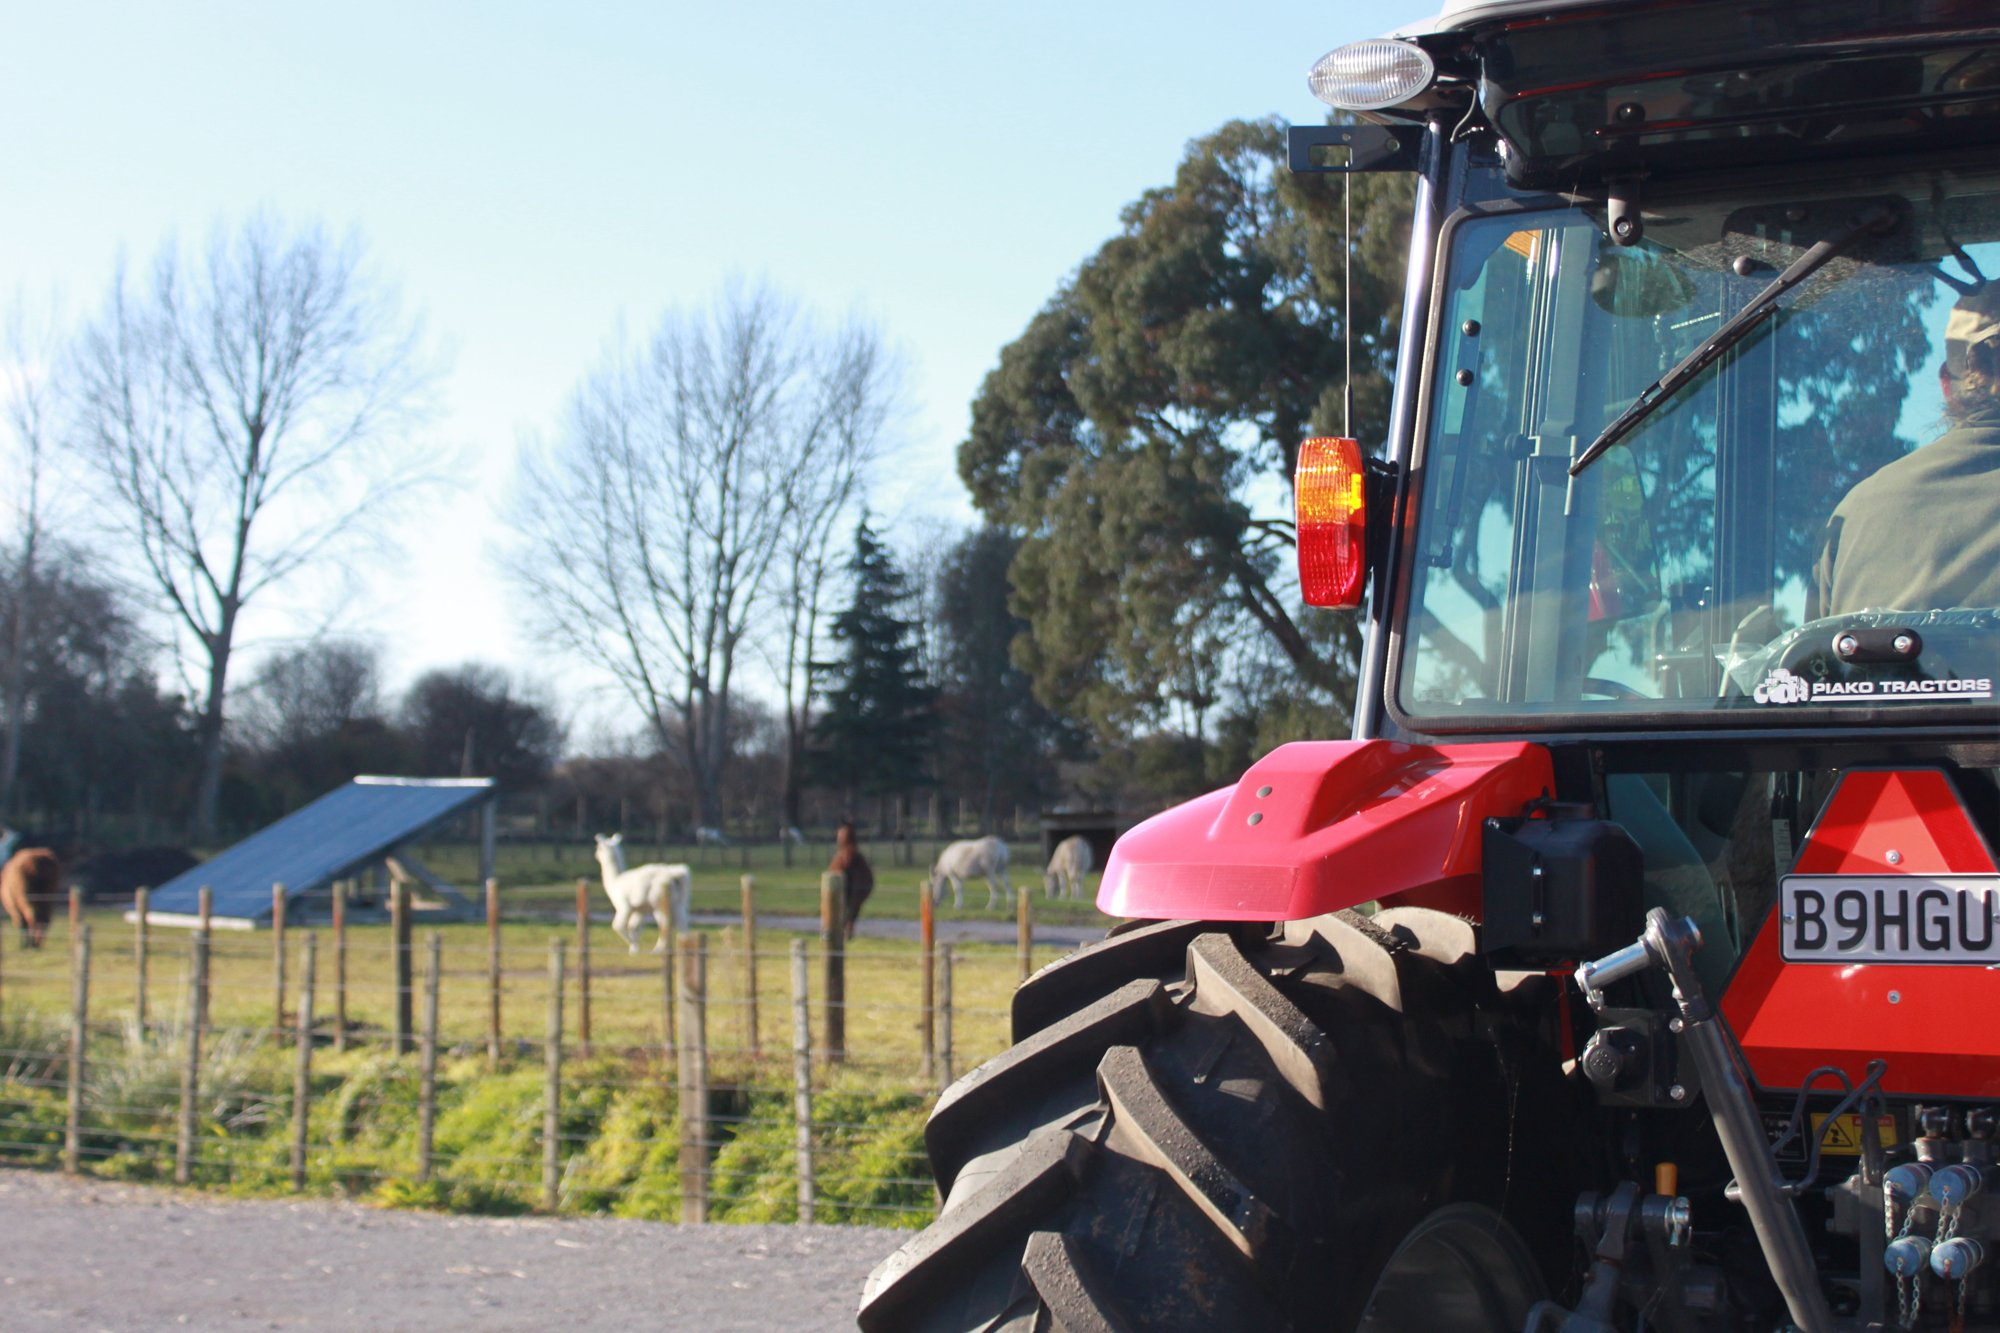 Join an hour NZ farm tour with a powerful tractor.